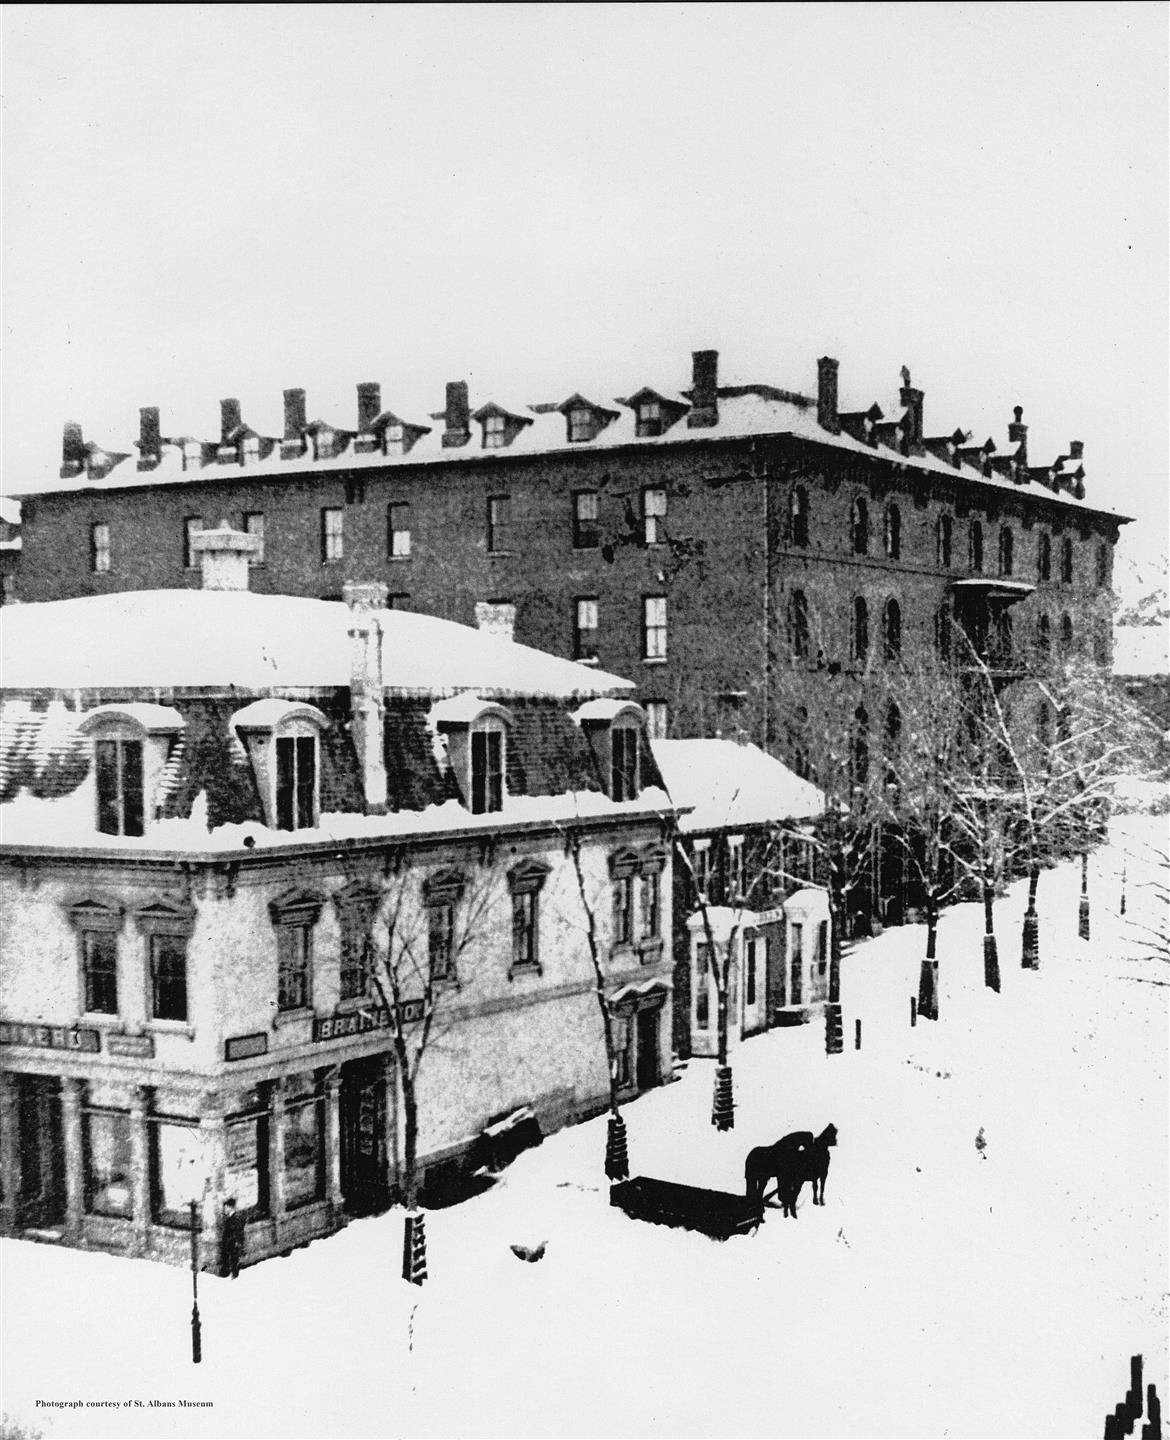 a black and white picture of twiggs building covered in snow